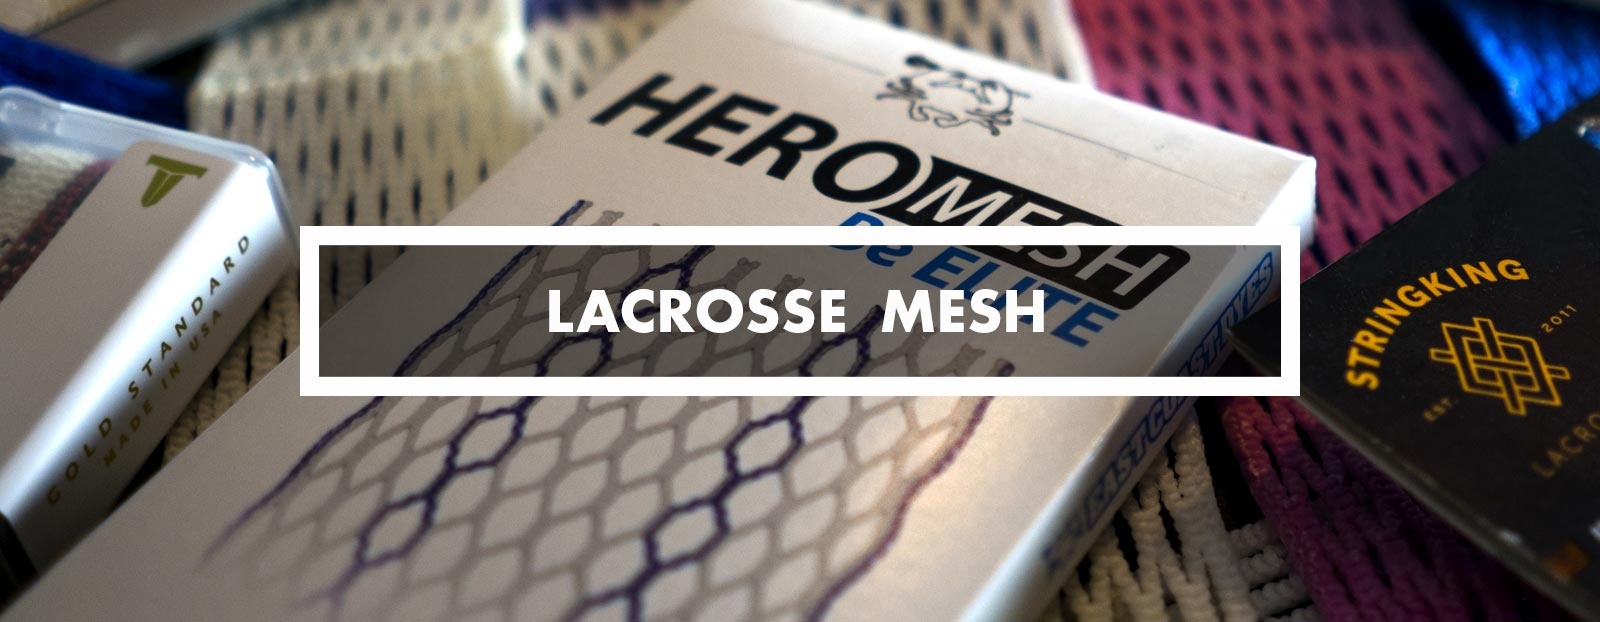 Category - lacrosse mesh